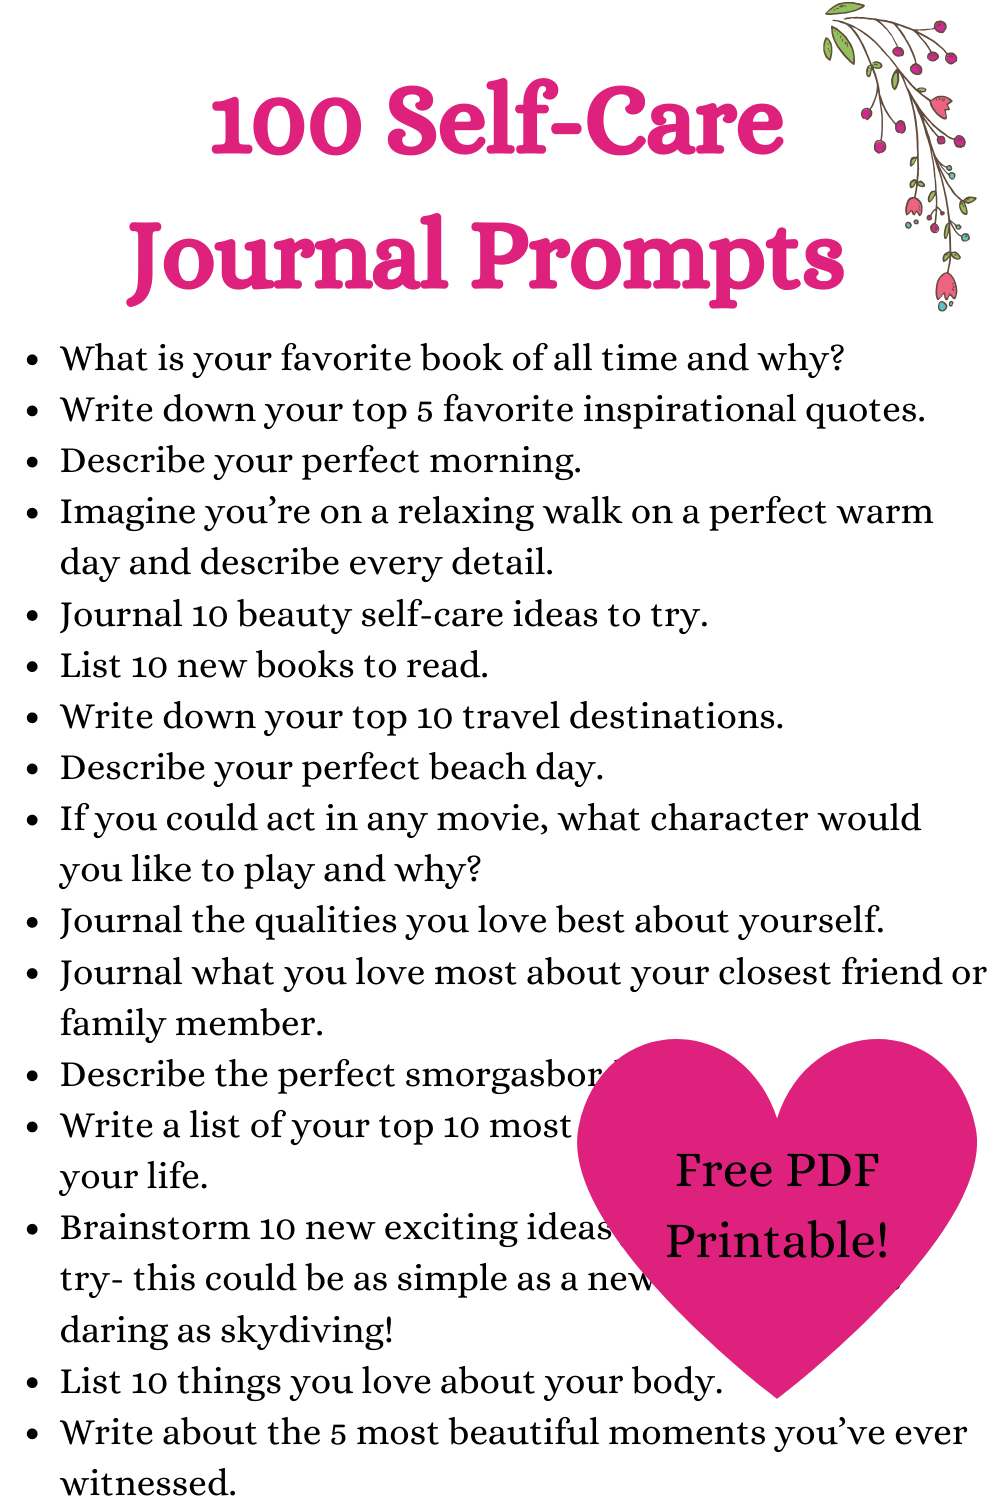 100 Self-care journal prompts with free printable journal pages, (PDF printable pages!) Perfect for your bullet journal or dedicated self-love journal.